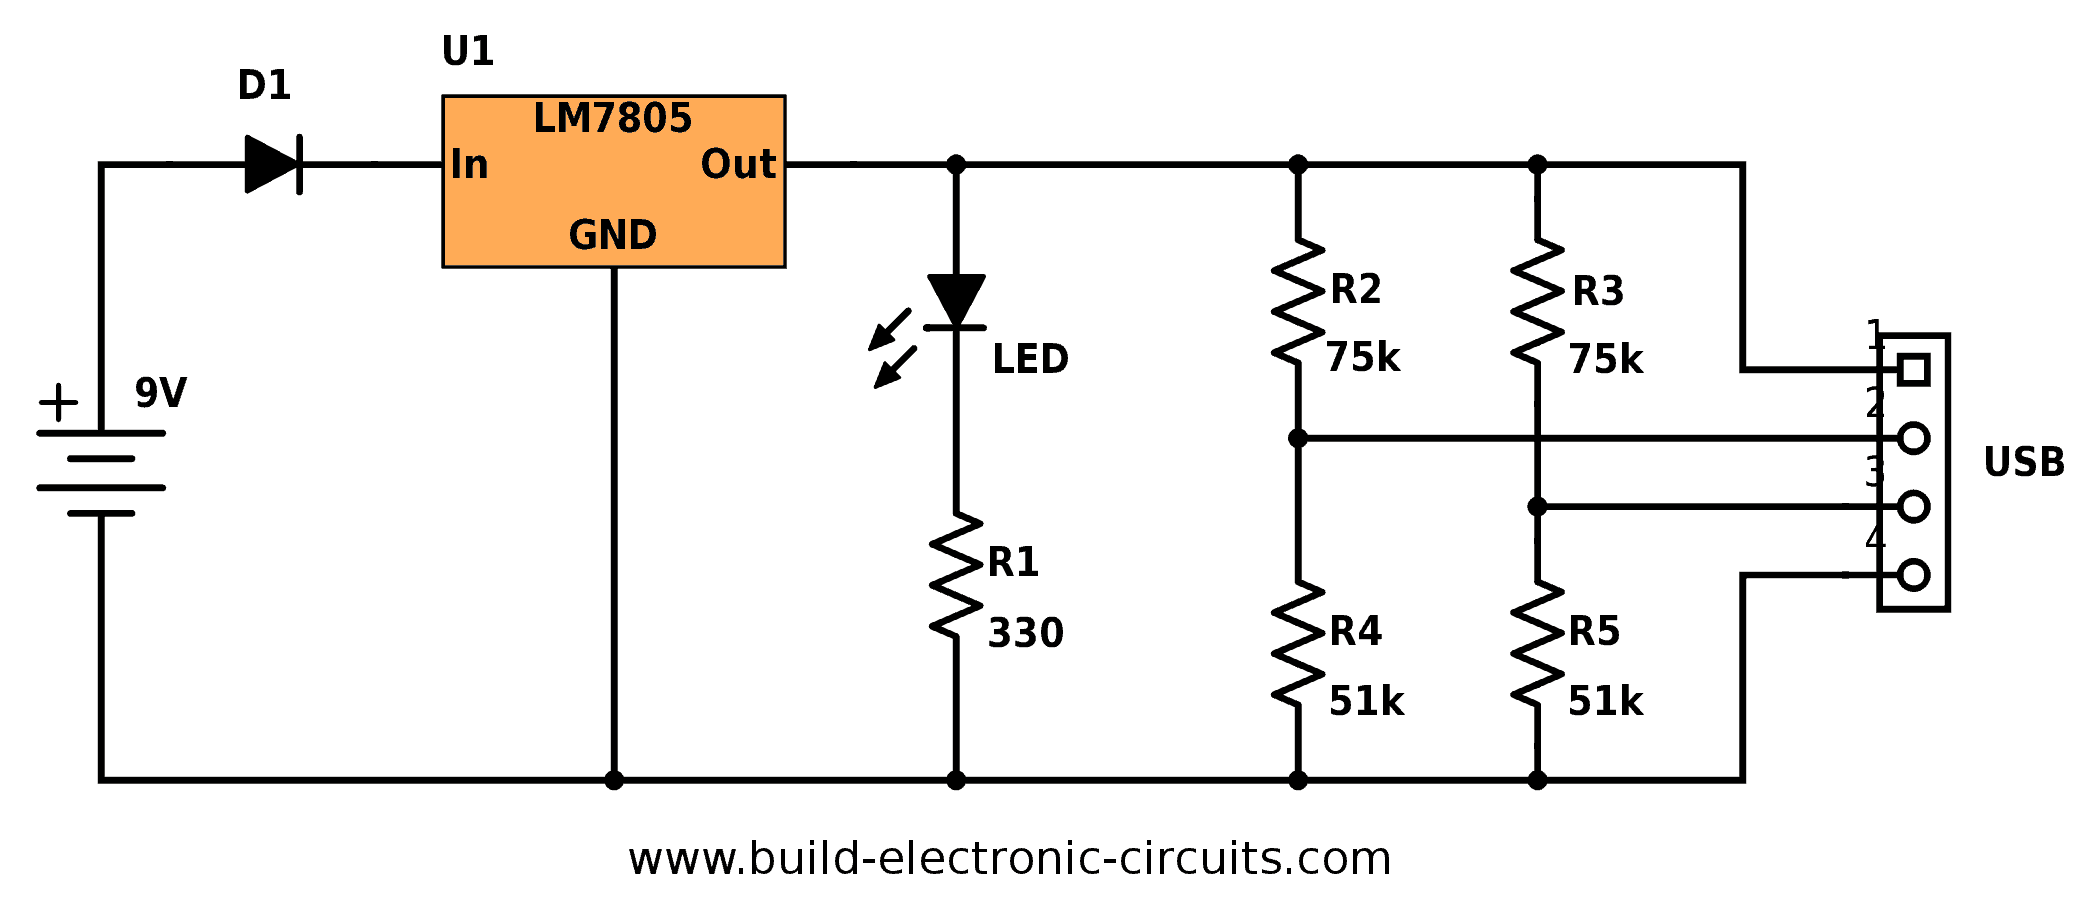 Portable Usb Charger Circuit Build Electronic Circuits Diagram Also Maker 2000 Download On Electric Schematic